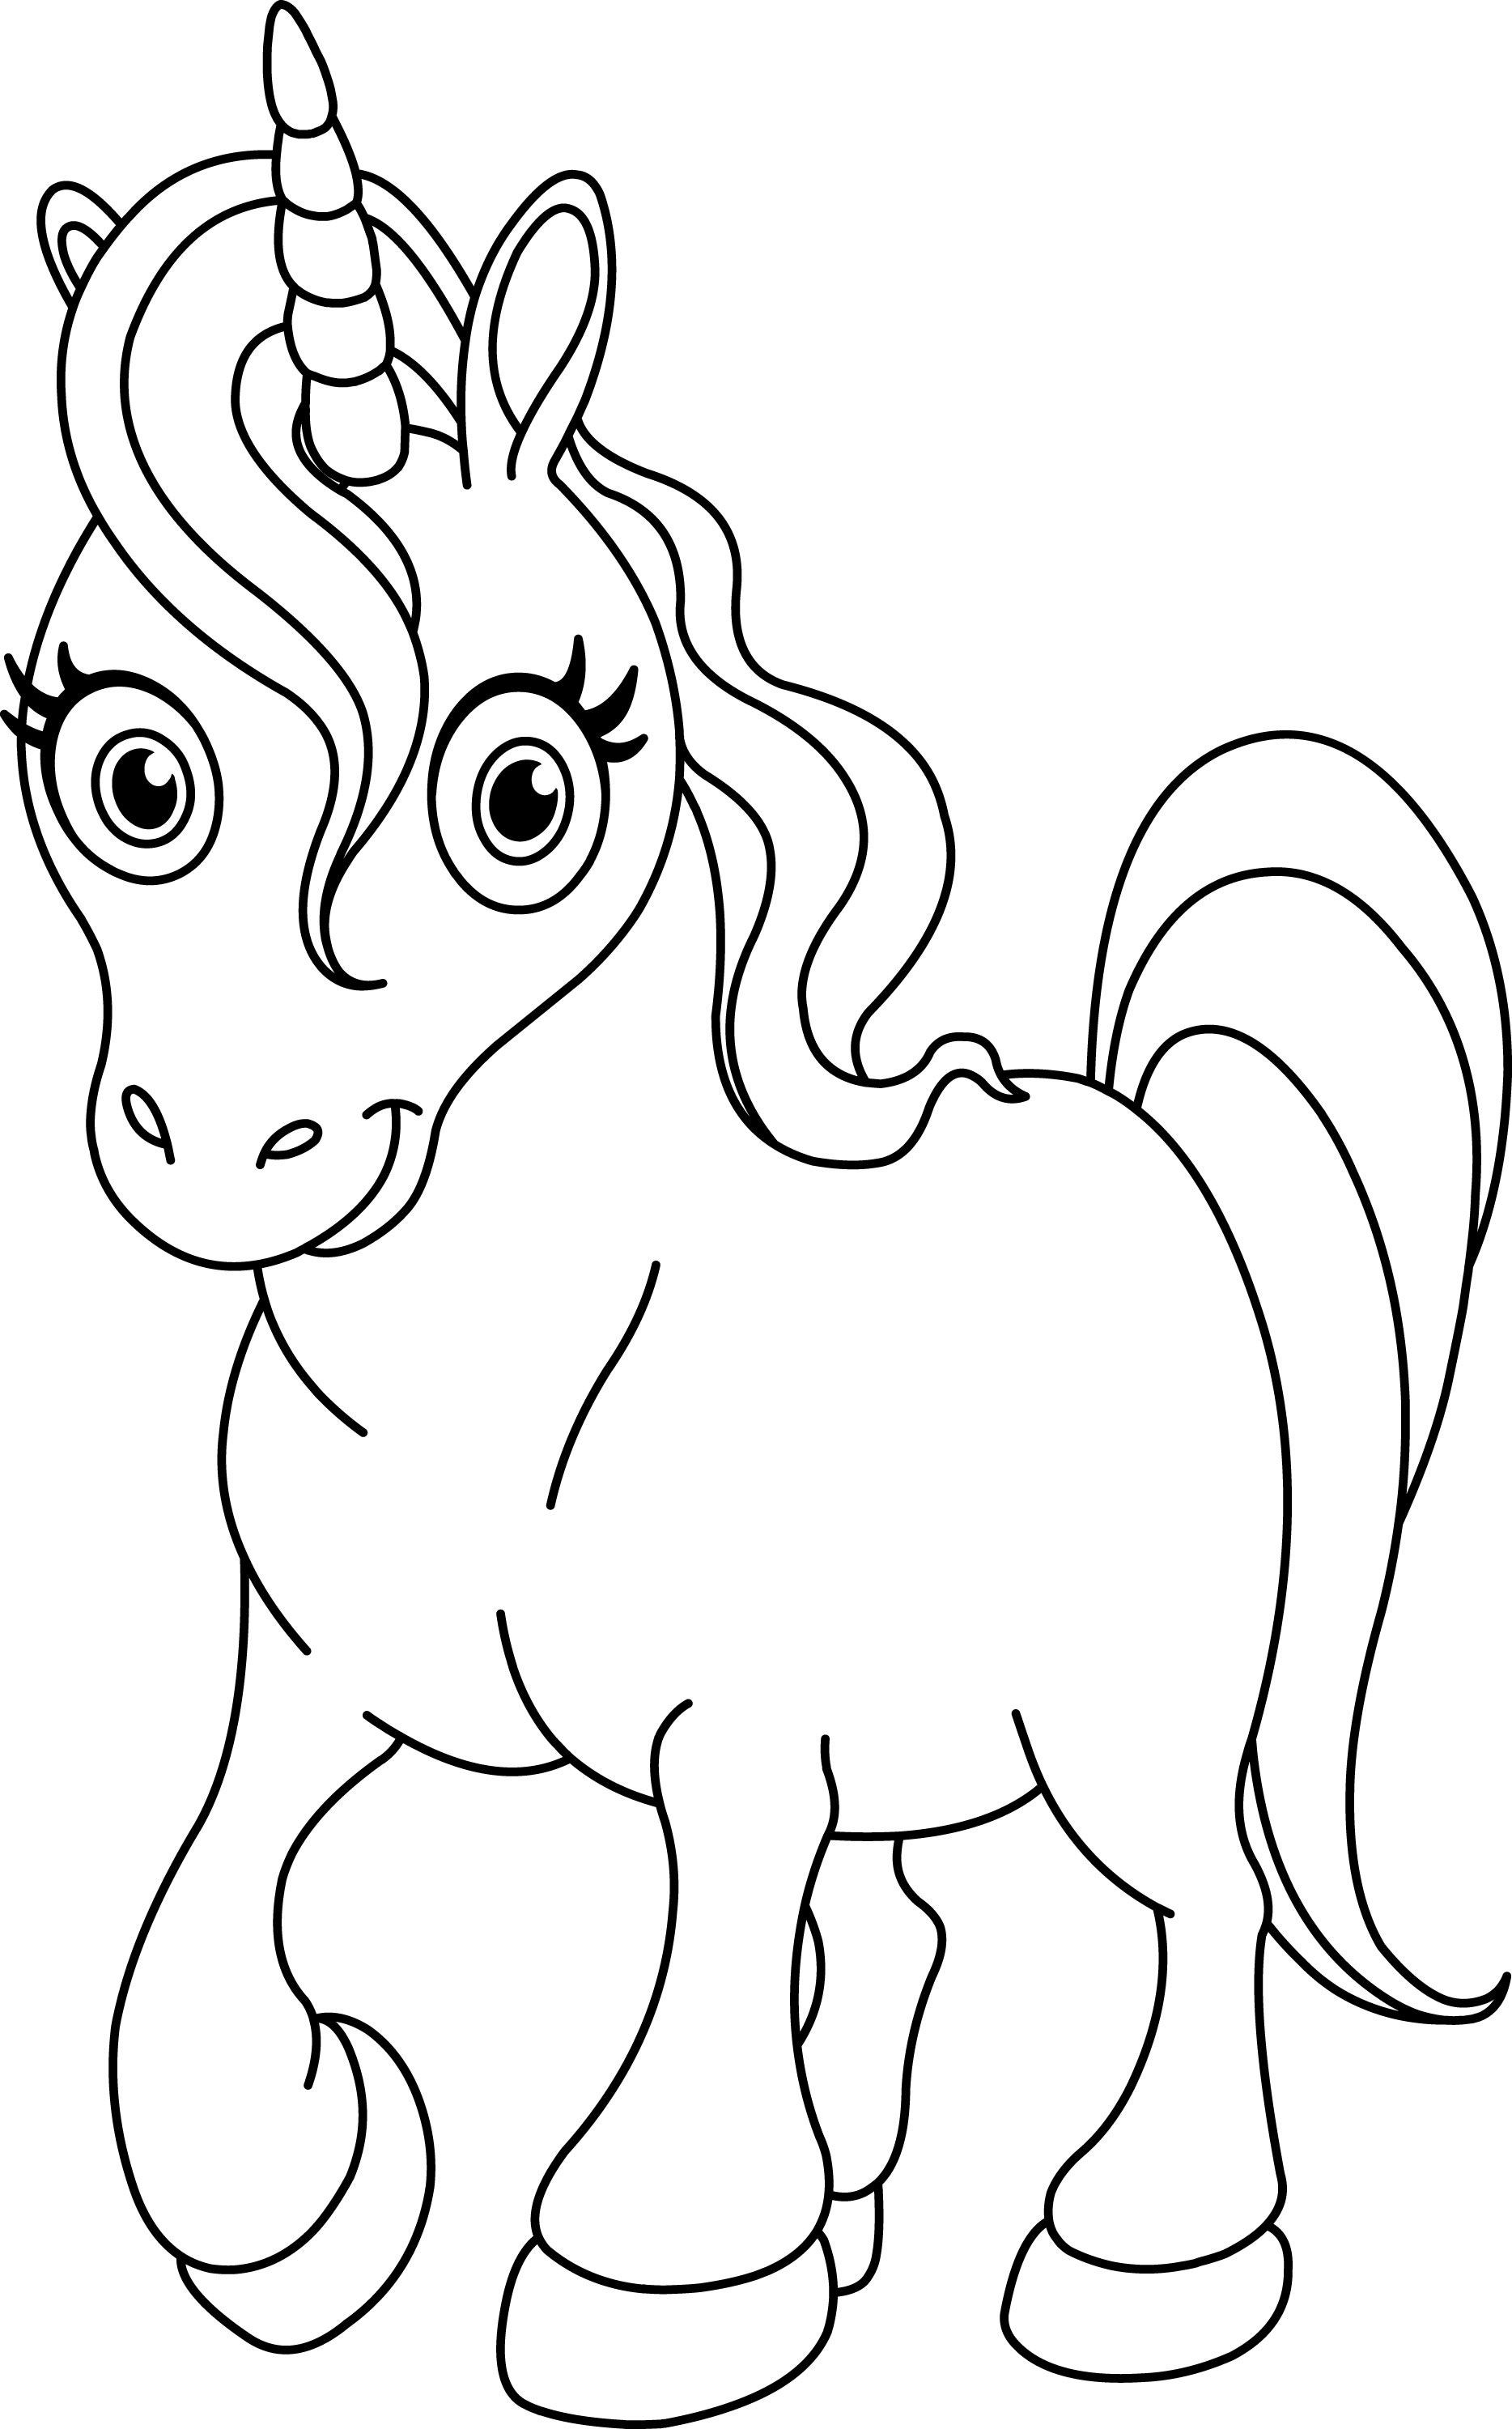 Coloring Sheets For Girls Unicorn  Pay attention for this explanation to do the Unicorn